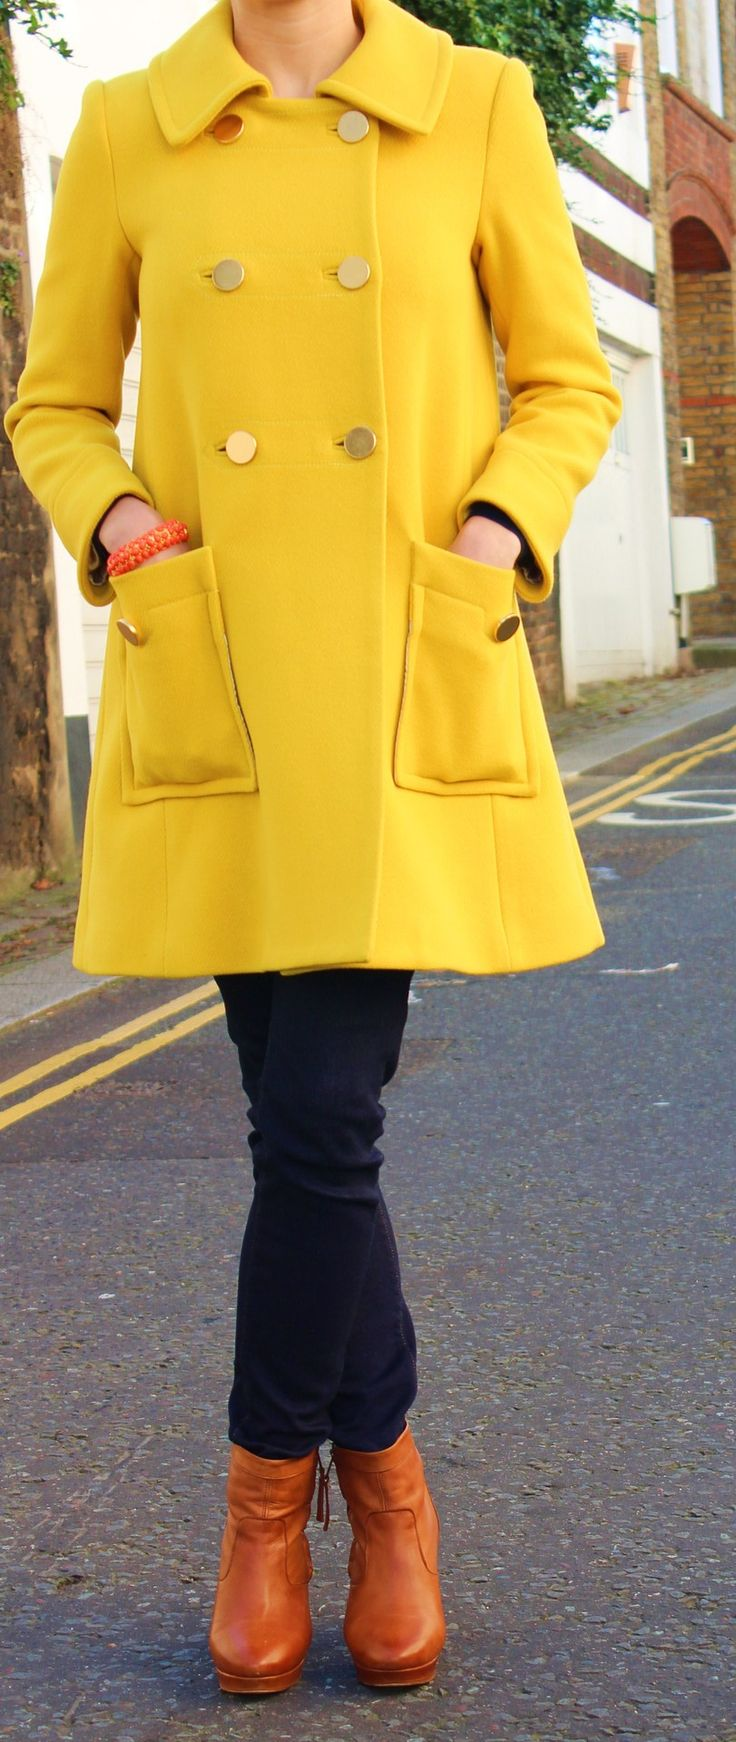 Yachty: Myka in J.Crew jacket, Uniqlo jeans, Kurt Geiger boots - can't get enough of the brights even in freezing temps!